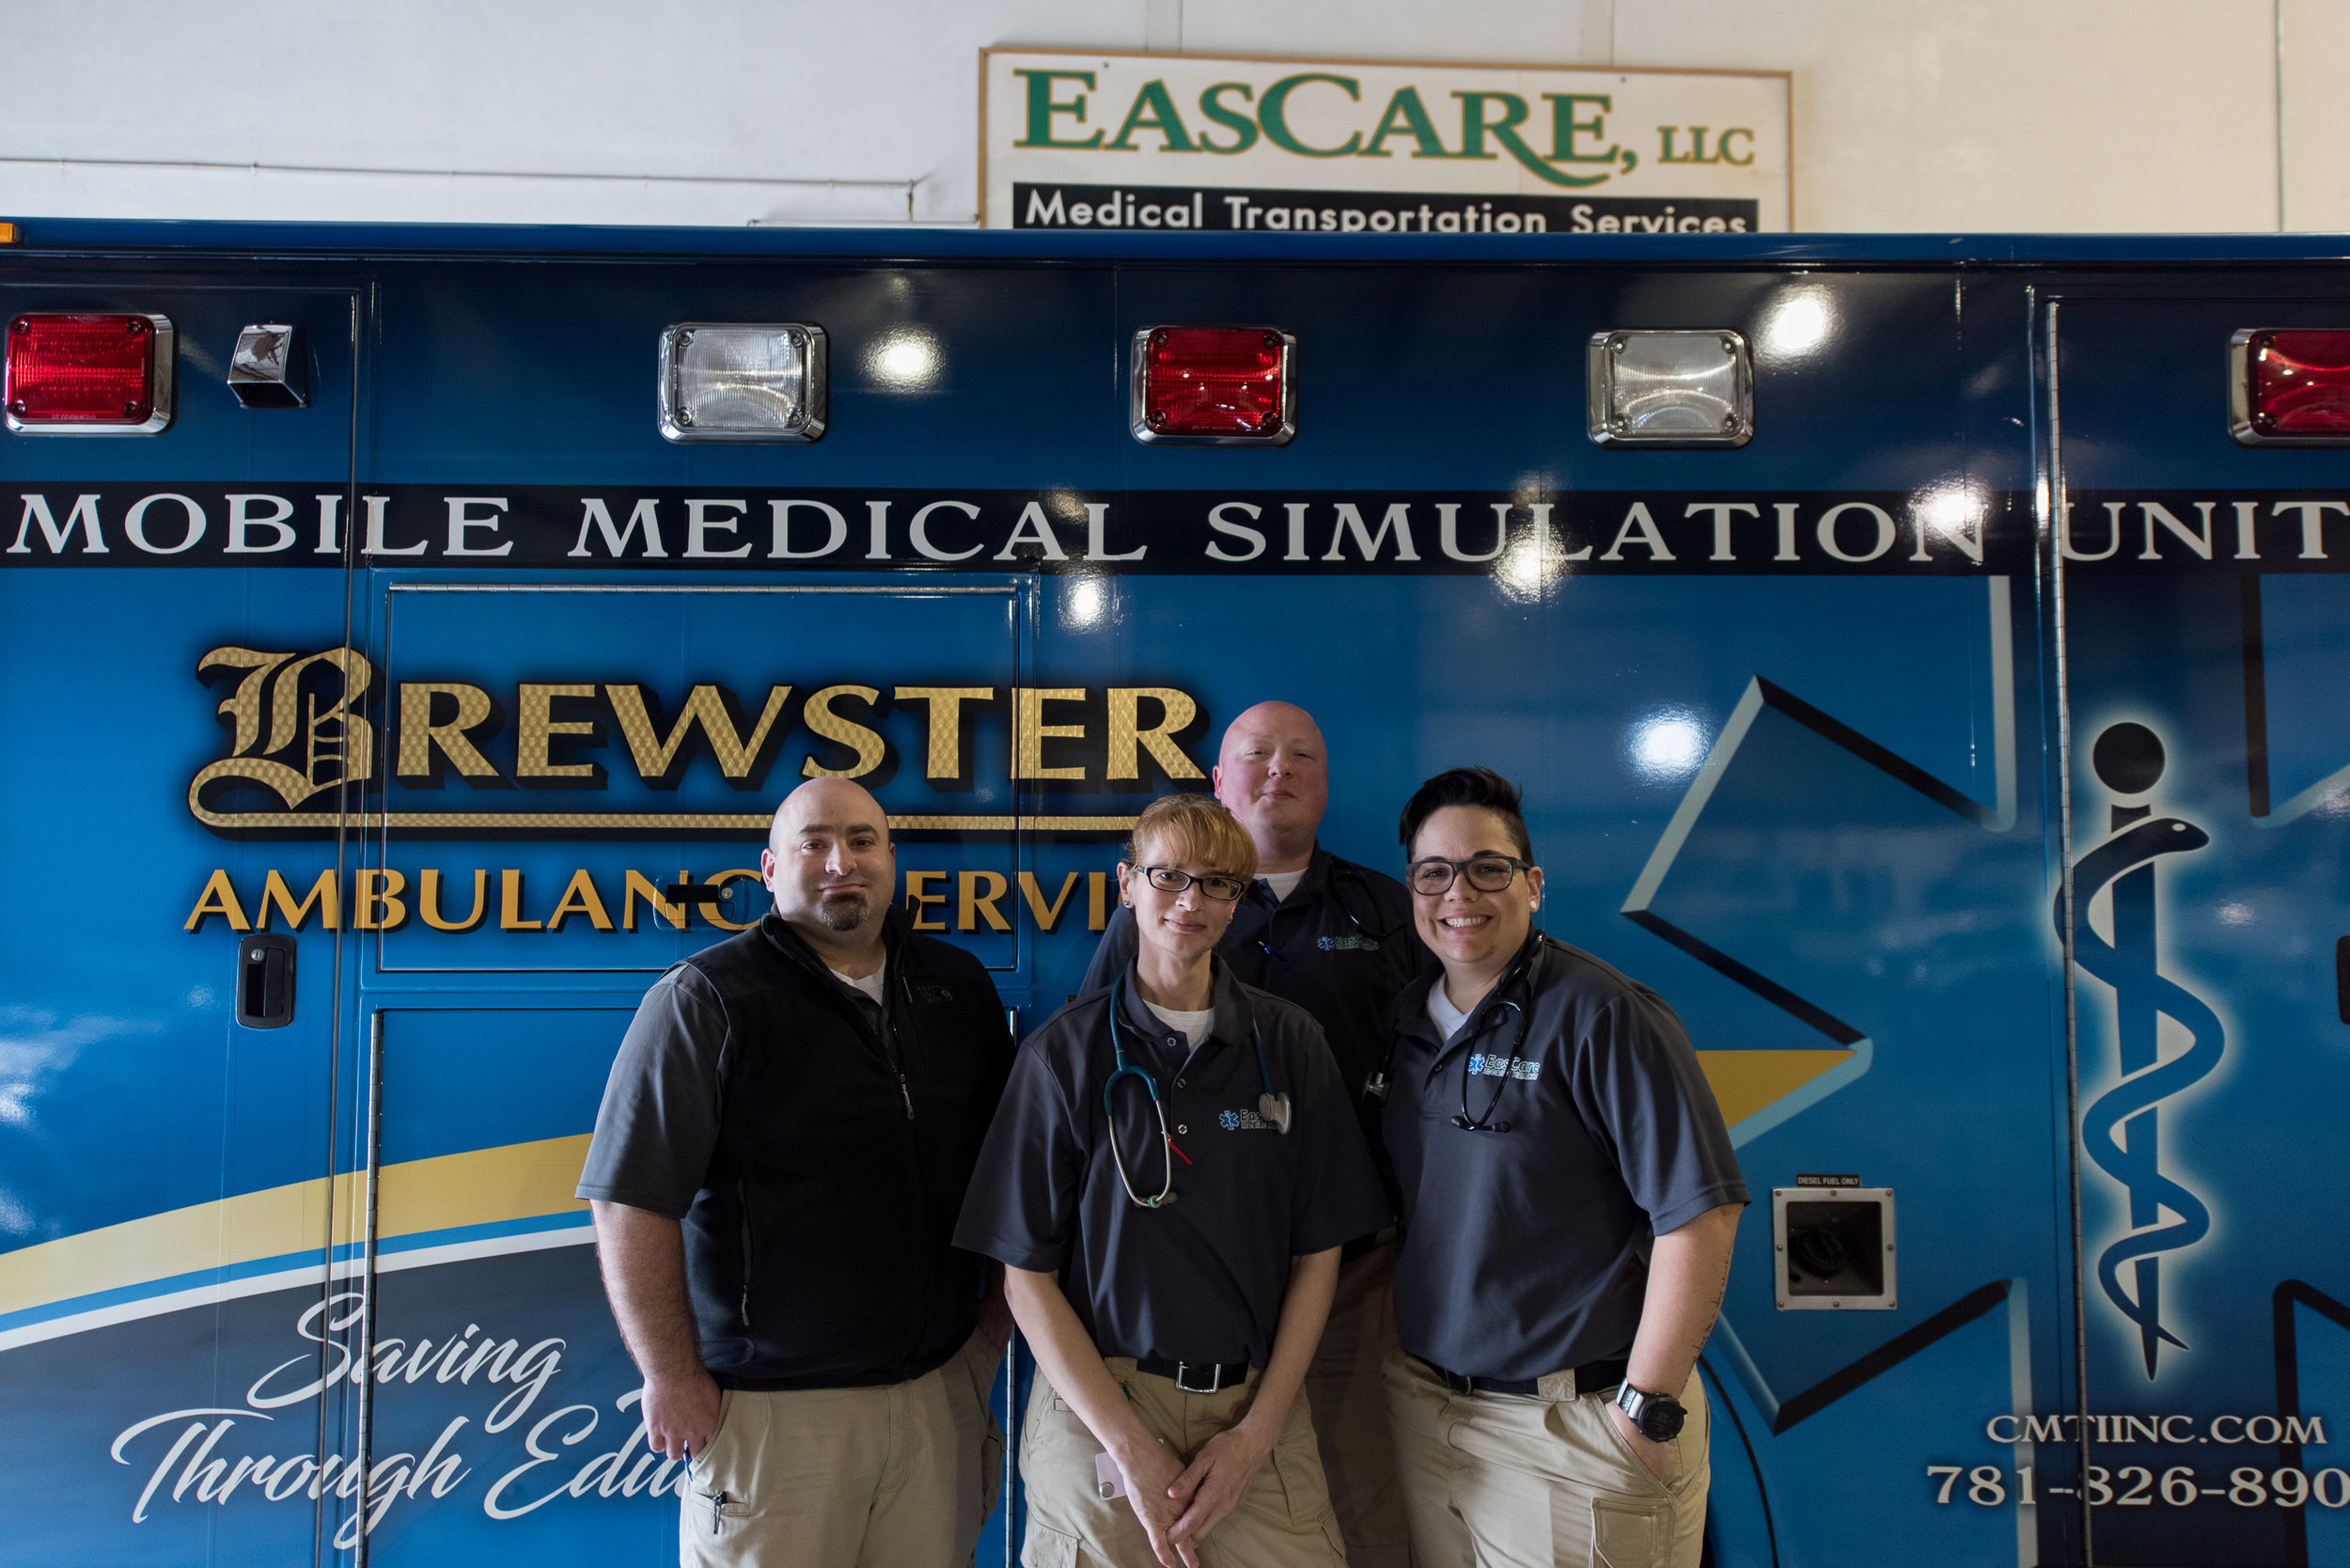 EasCare's MIH team preparing for a day of training with Brewster Ambulance Service and CMTI's Mobile Medical Simulation Unit